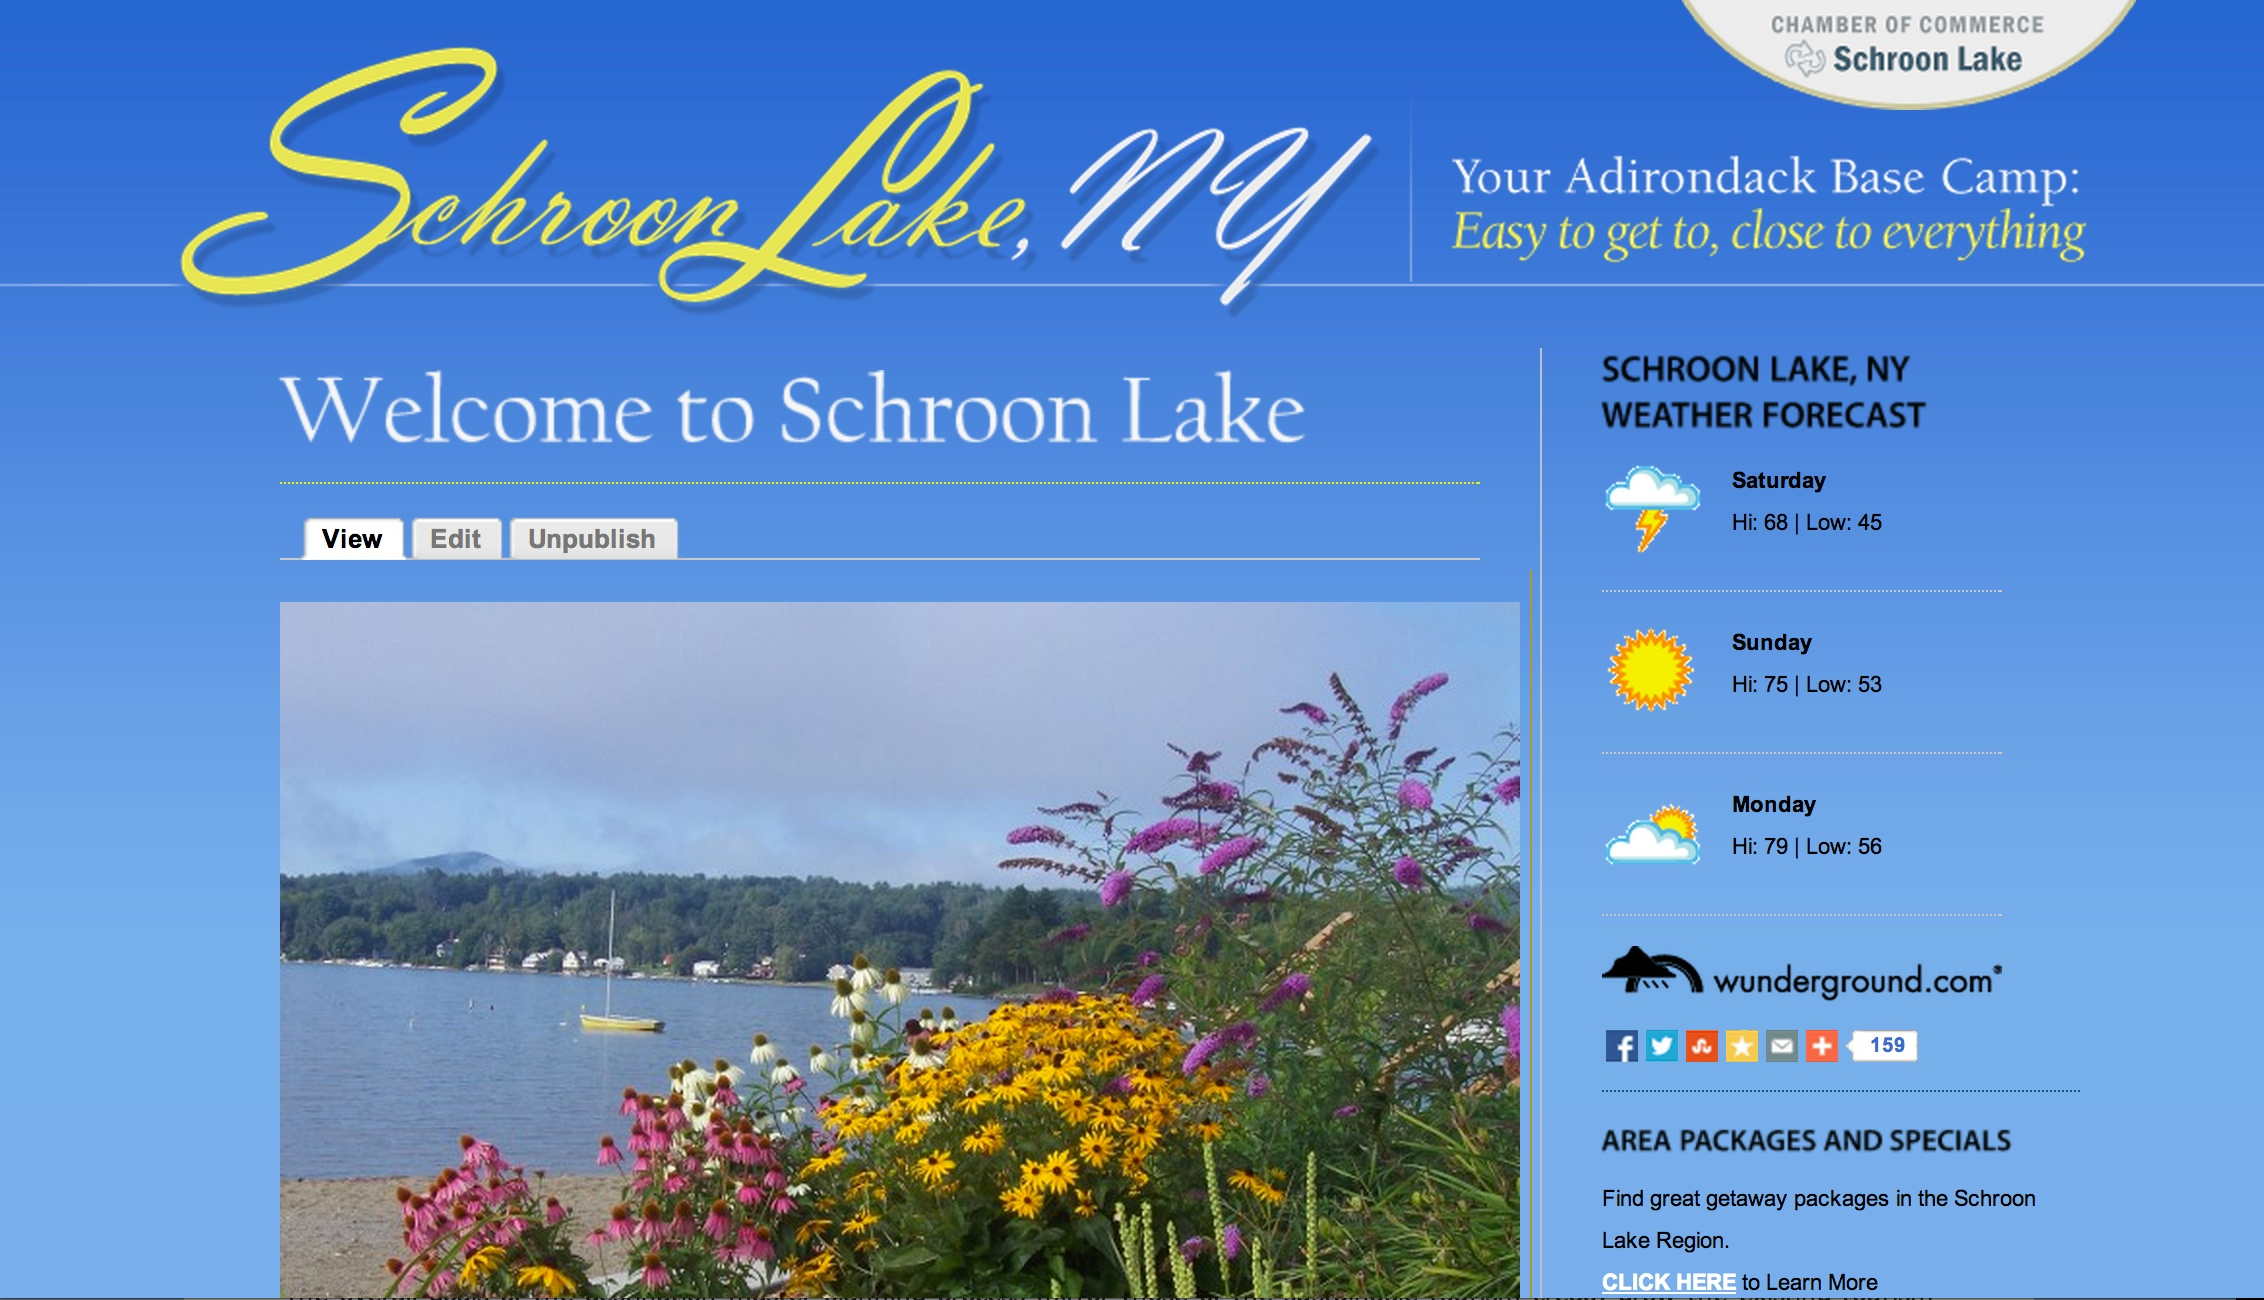 Adirondack_Vacations___Schroon_Lake__New_York_and_Destination_Master_Plans___Regional_Office_of_Sustainable_Tourism